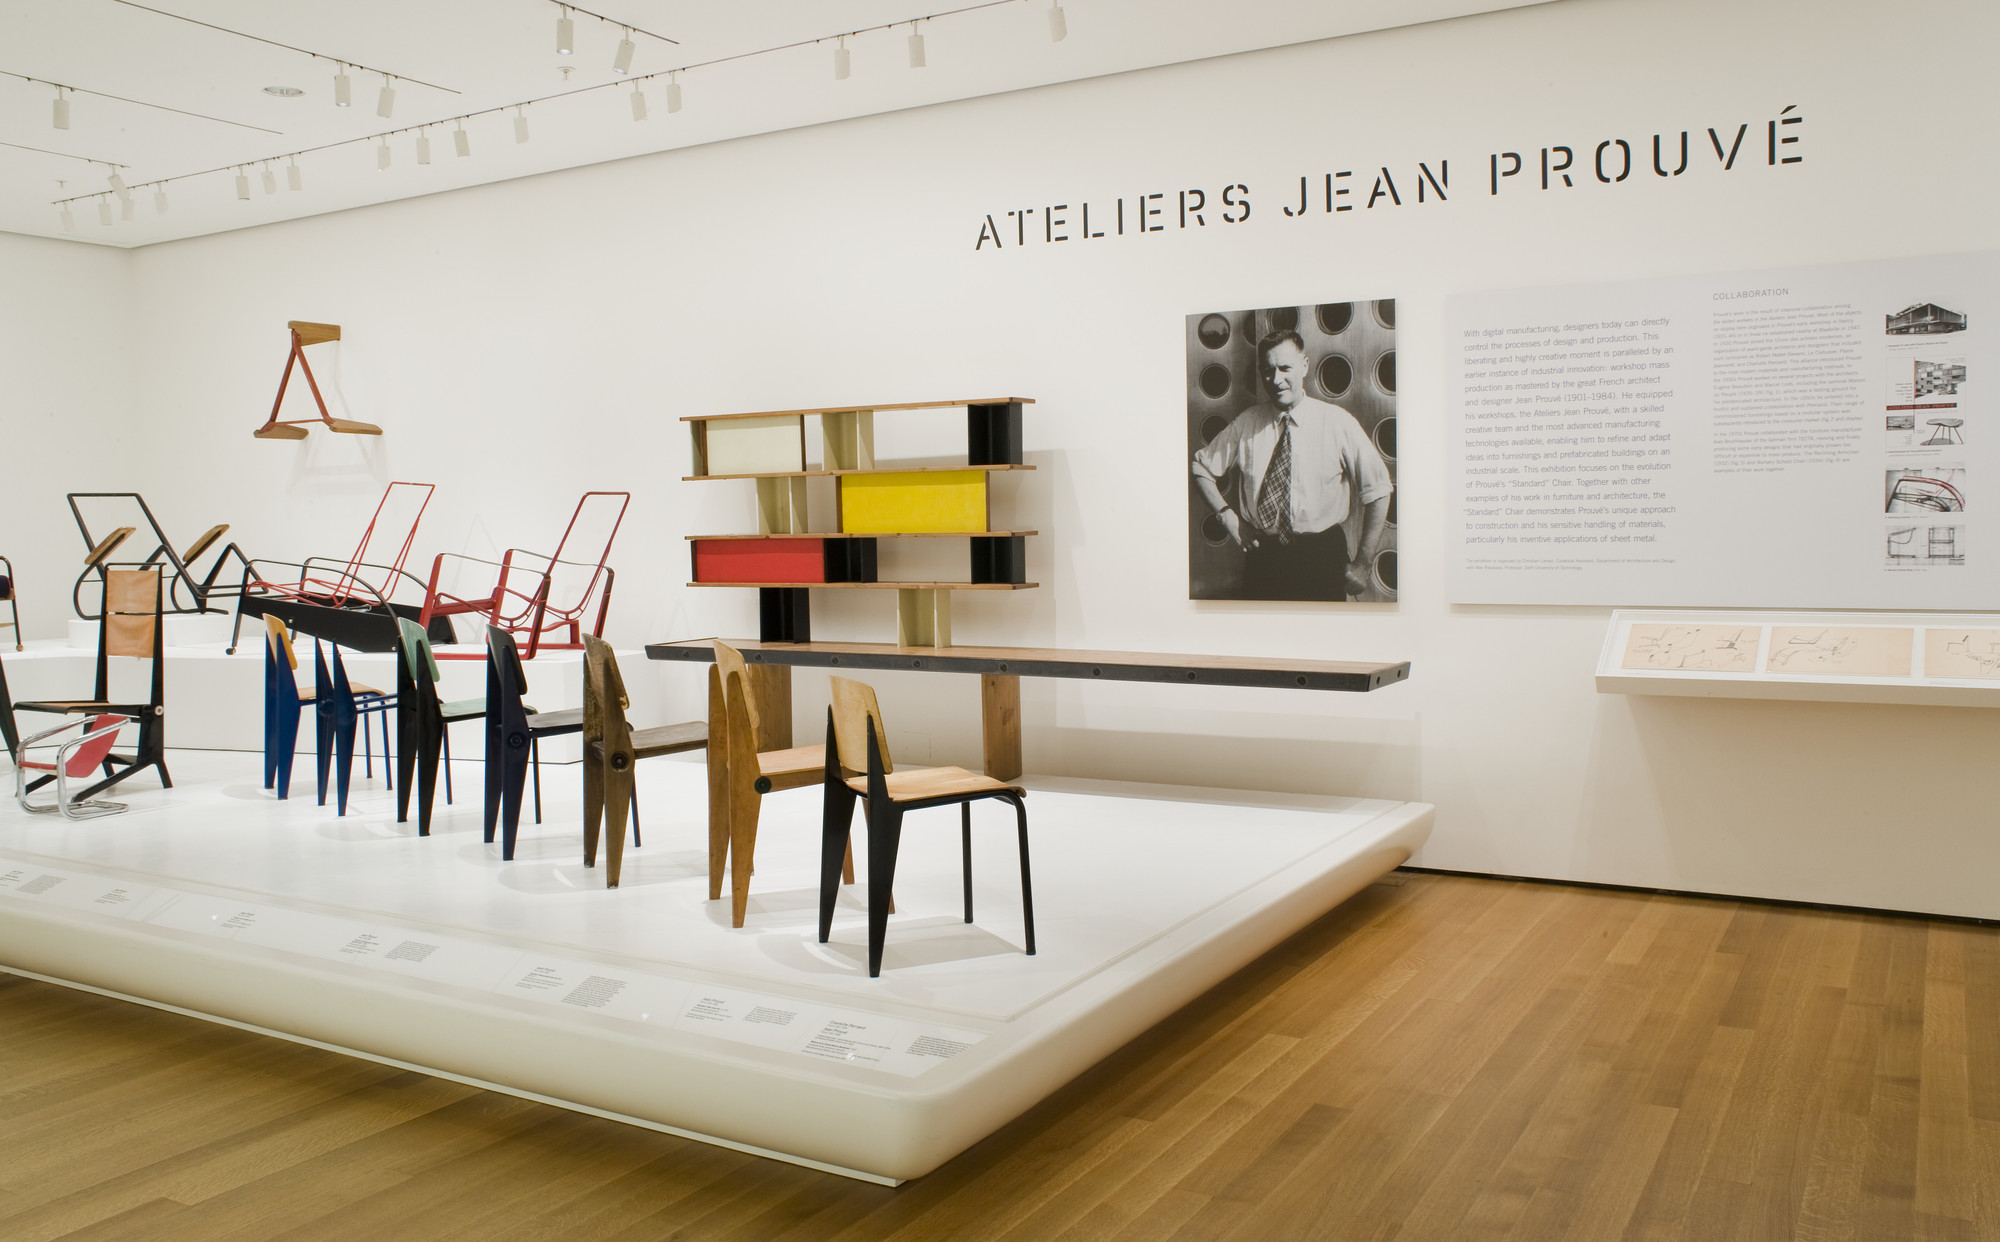 Ateliers jean prouv moma for Furniture design exhibition